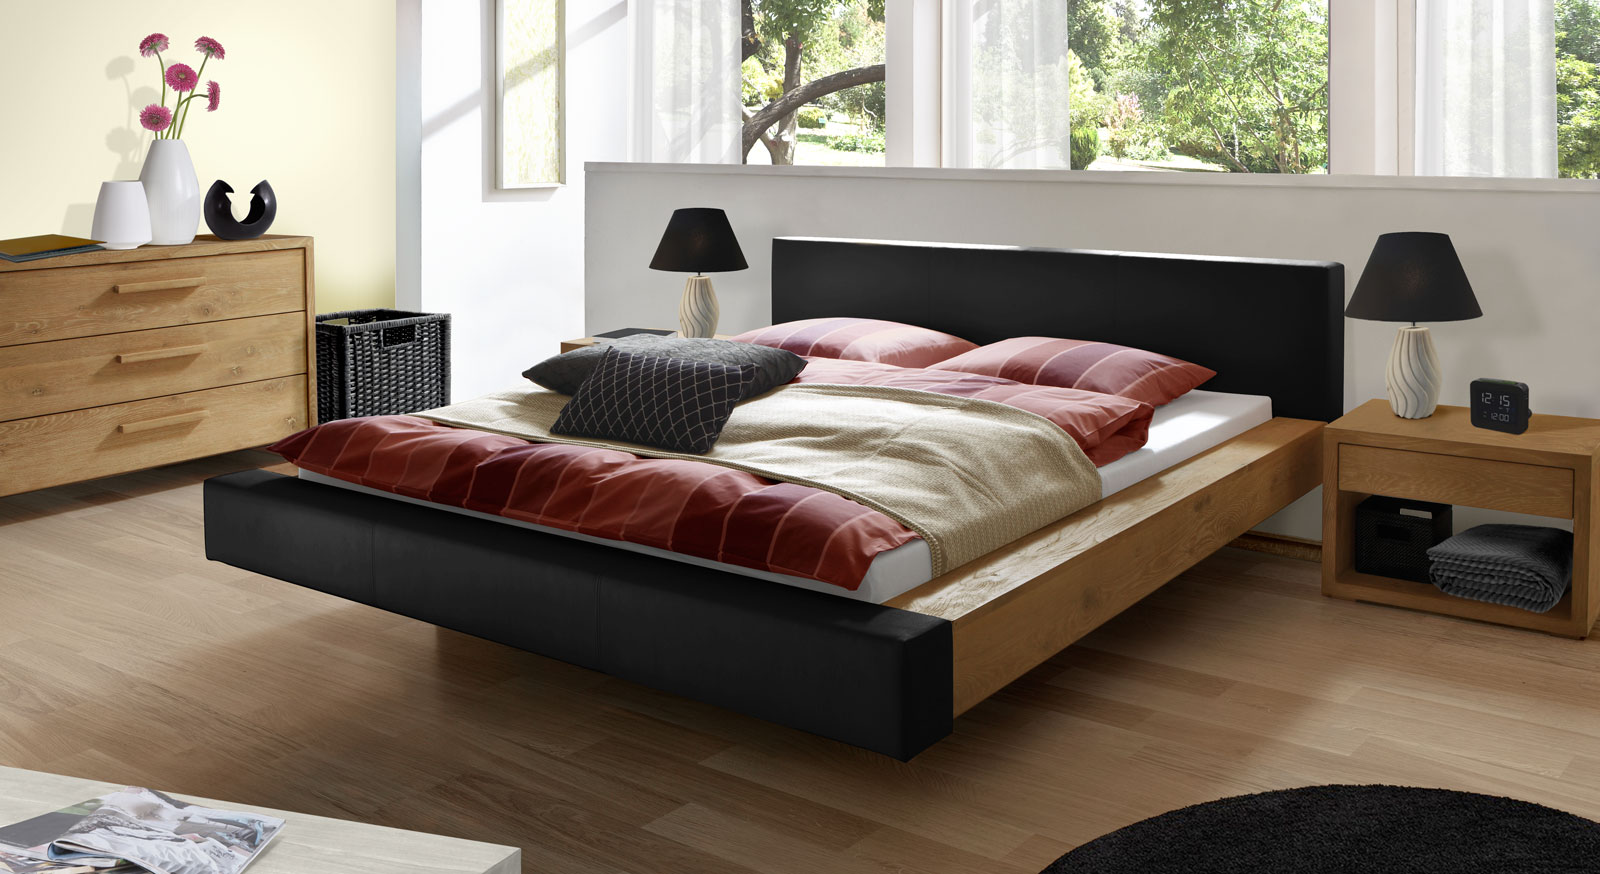 bett schwebend mit echtleder und massivholz vilar. Black Bedroom Furniture Sets. Home Design Ideas